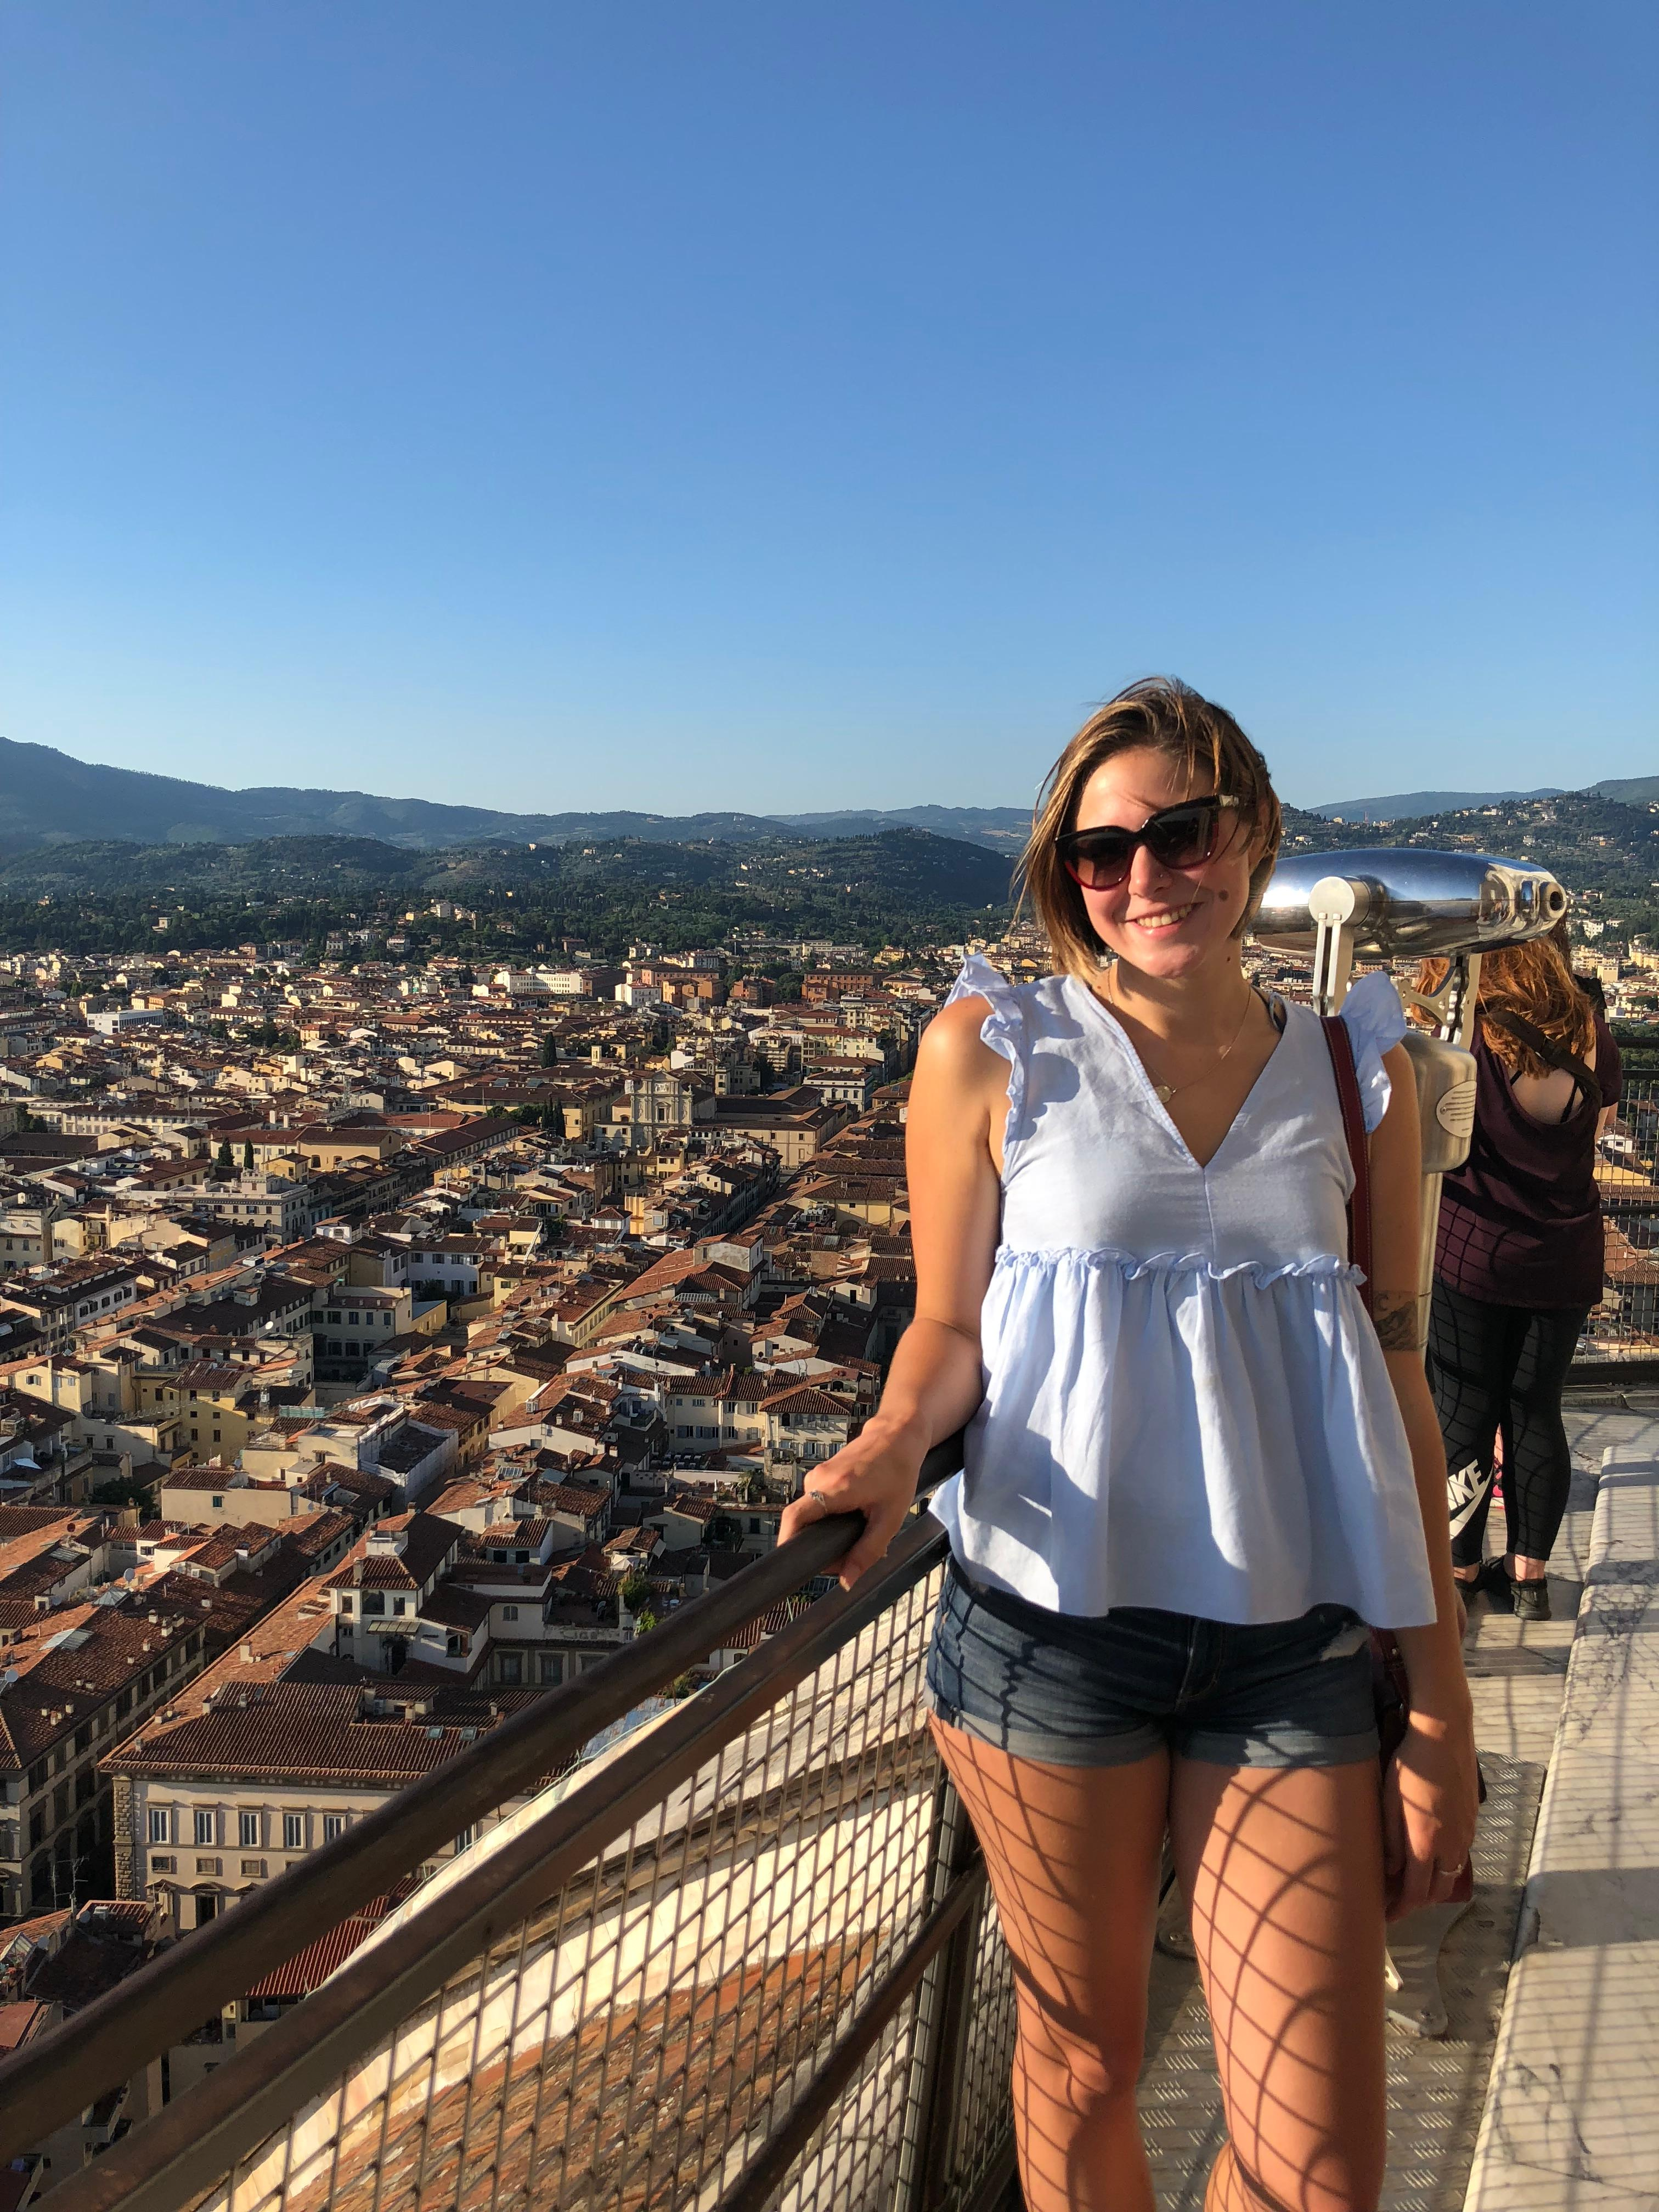 CAPAStudyAbroad_Florence_Summer2018_From Allyson Barnes - Overlooking the City